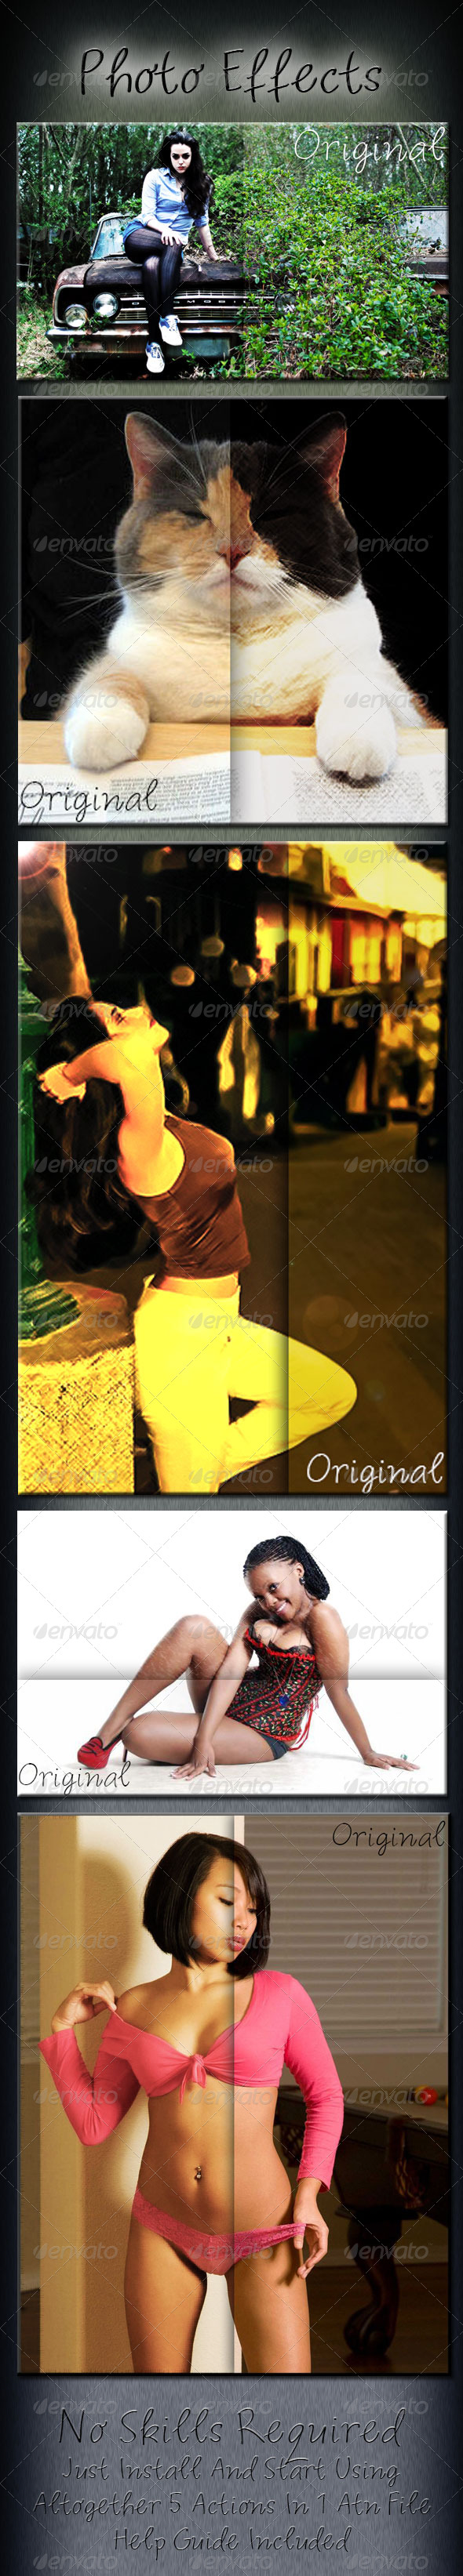 GraphicRiver Photo Effects 6135228